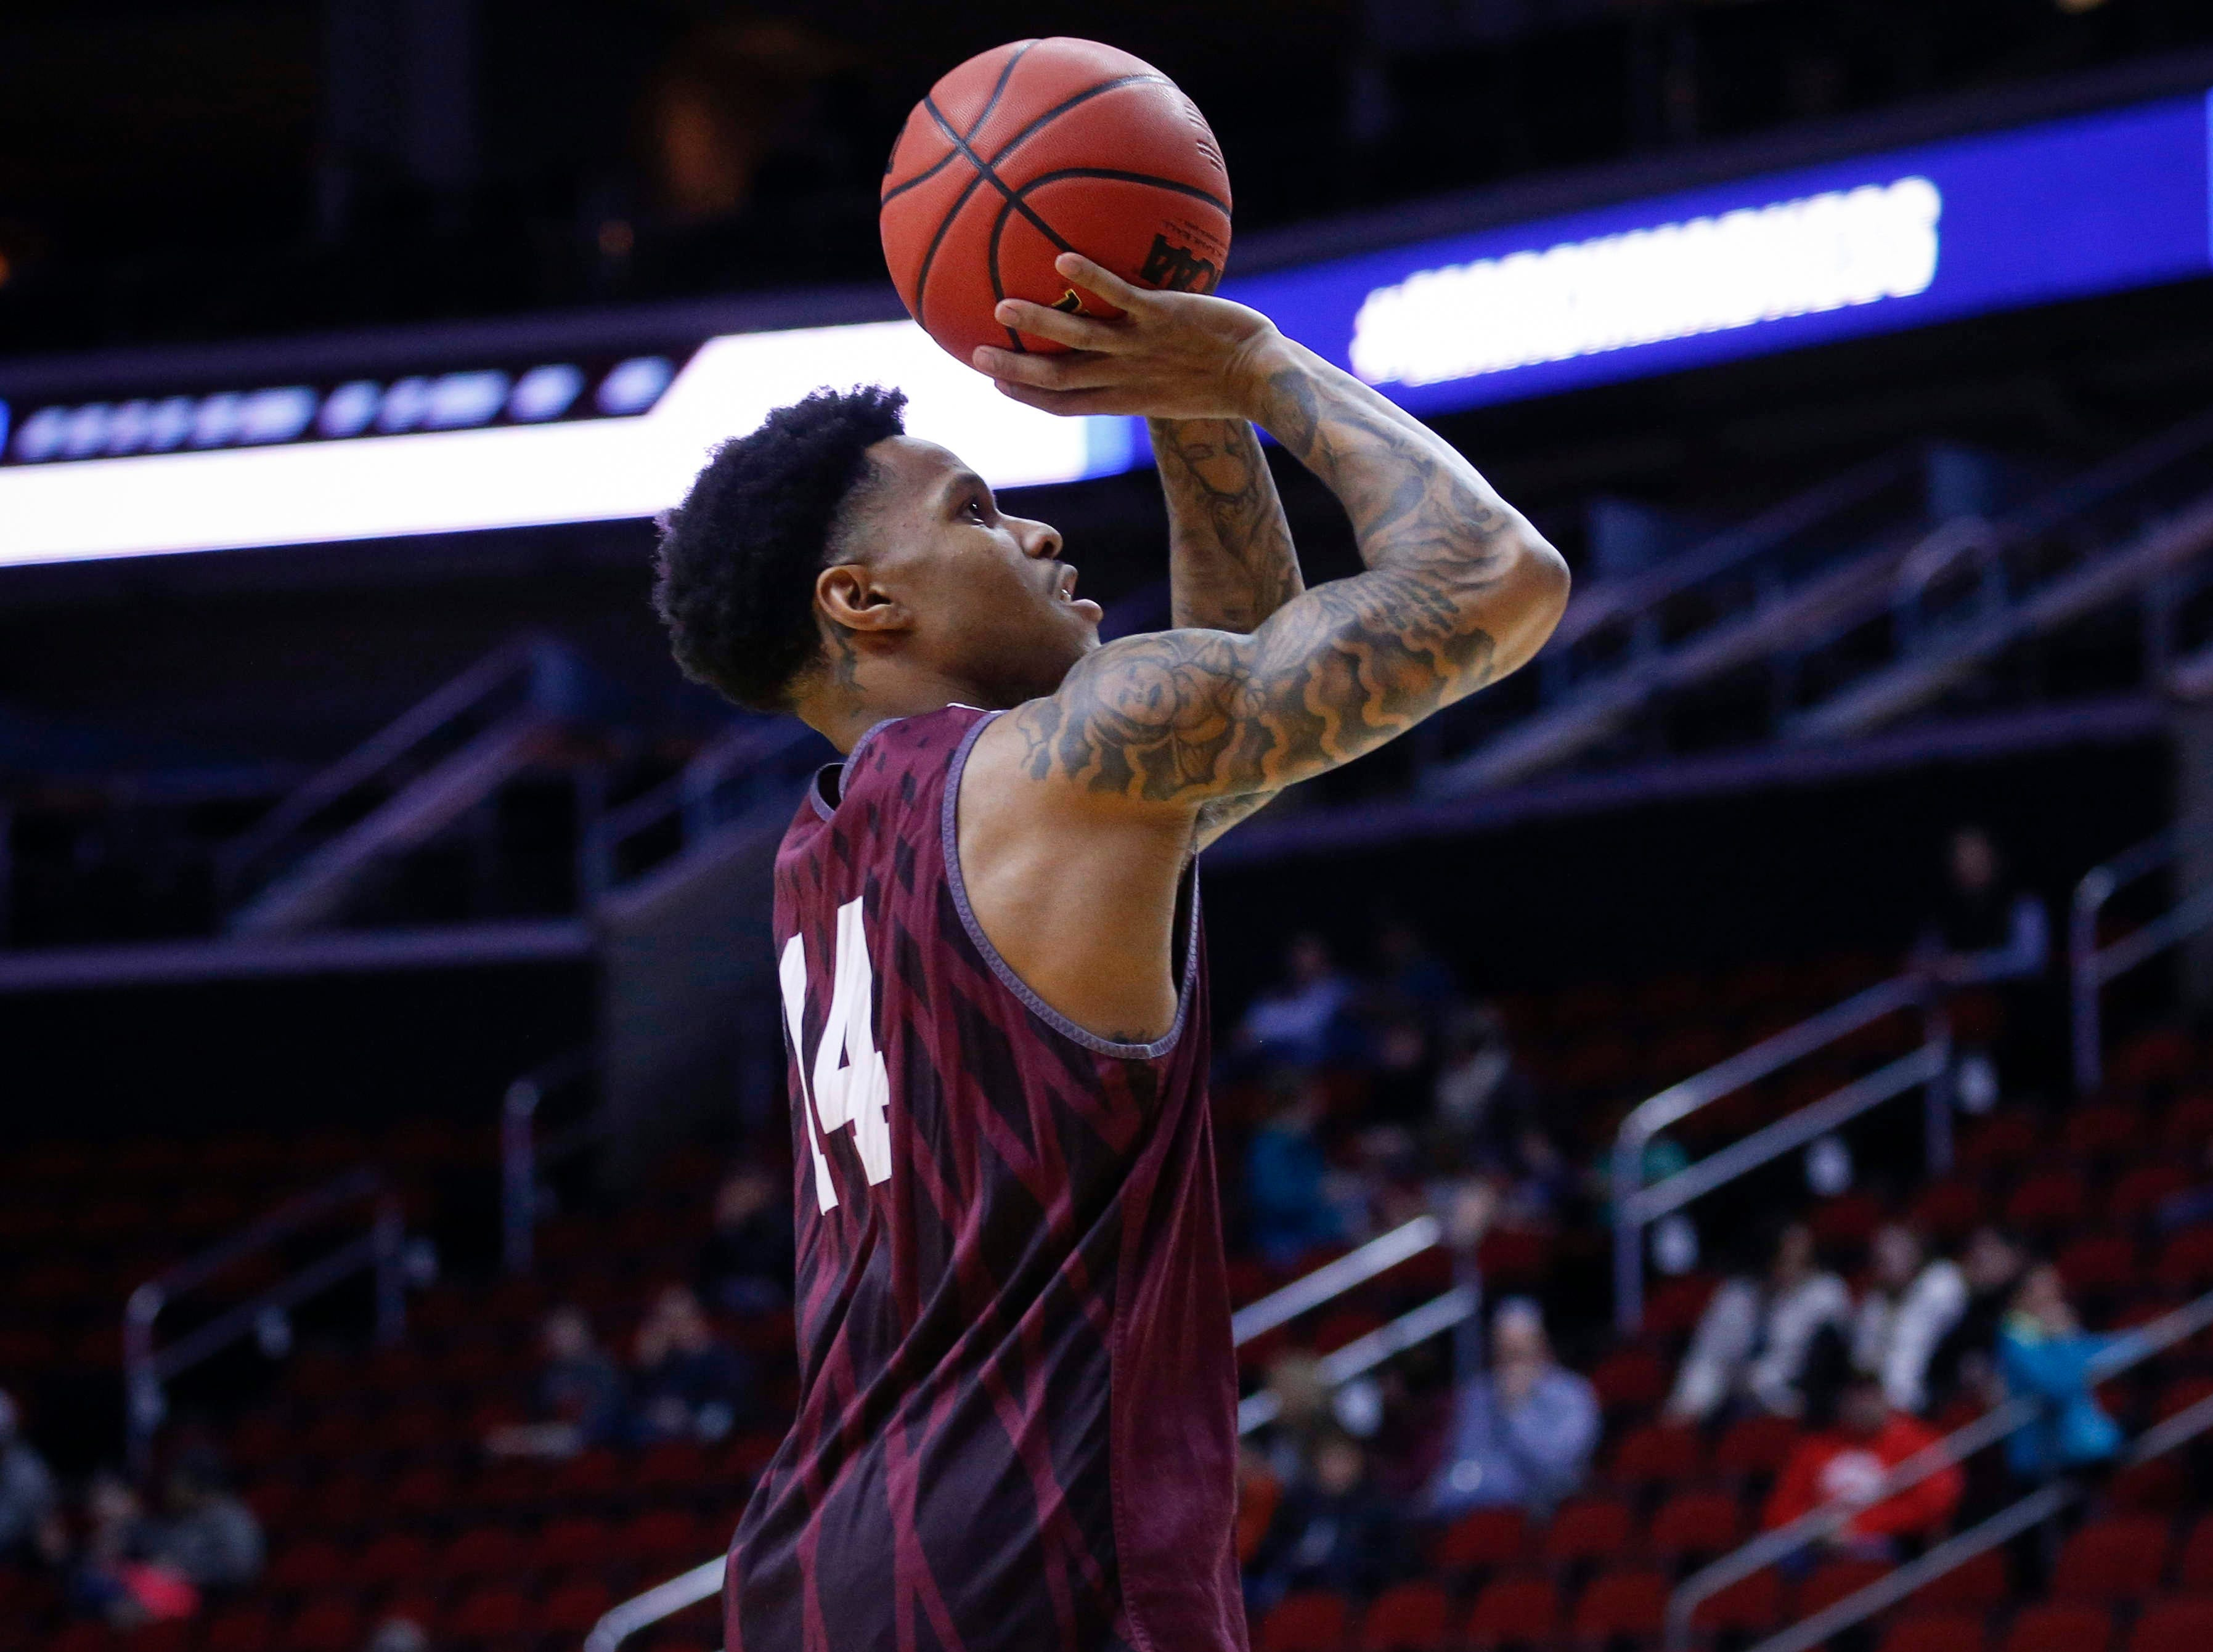 Montana senior Ahmaad Rorie shoots the ball during open practice on Wednesday, March 20, 2019, at Wells Fargo Arena in Des Moines, Iowa.